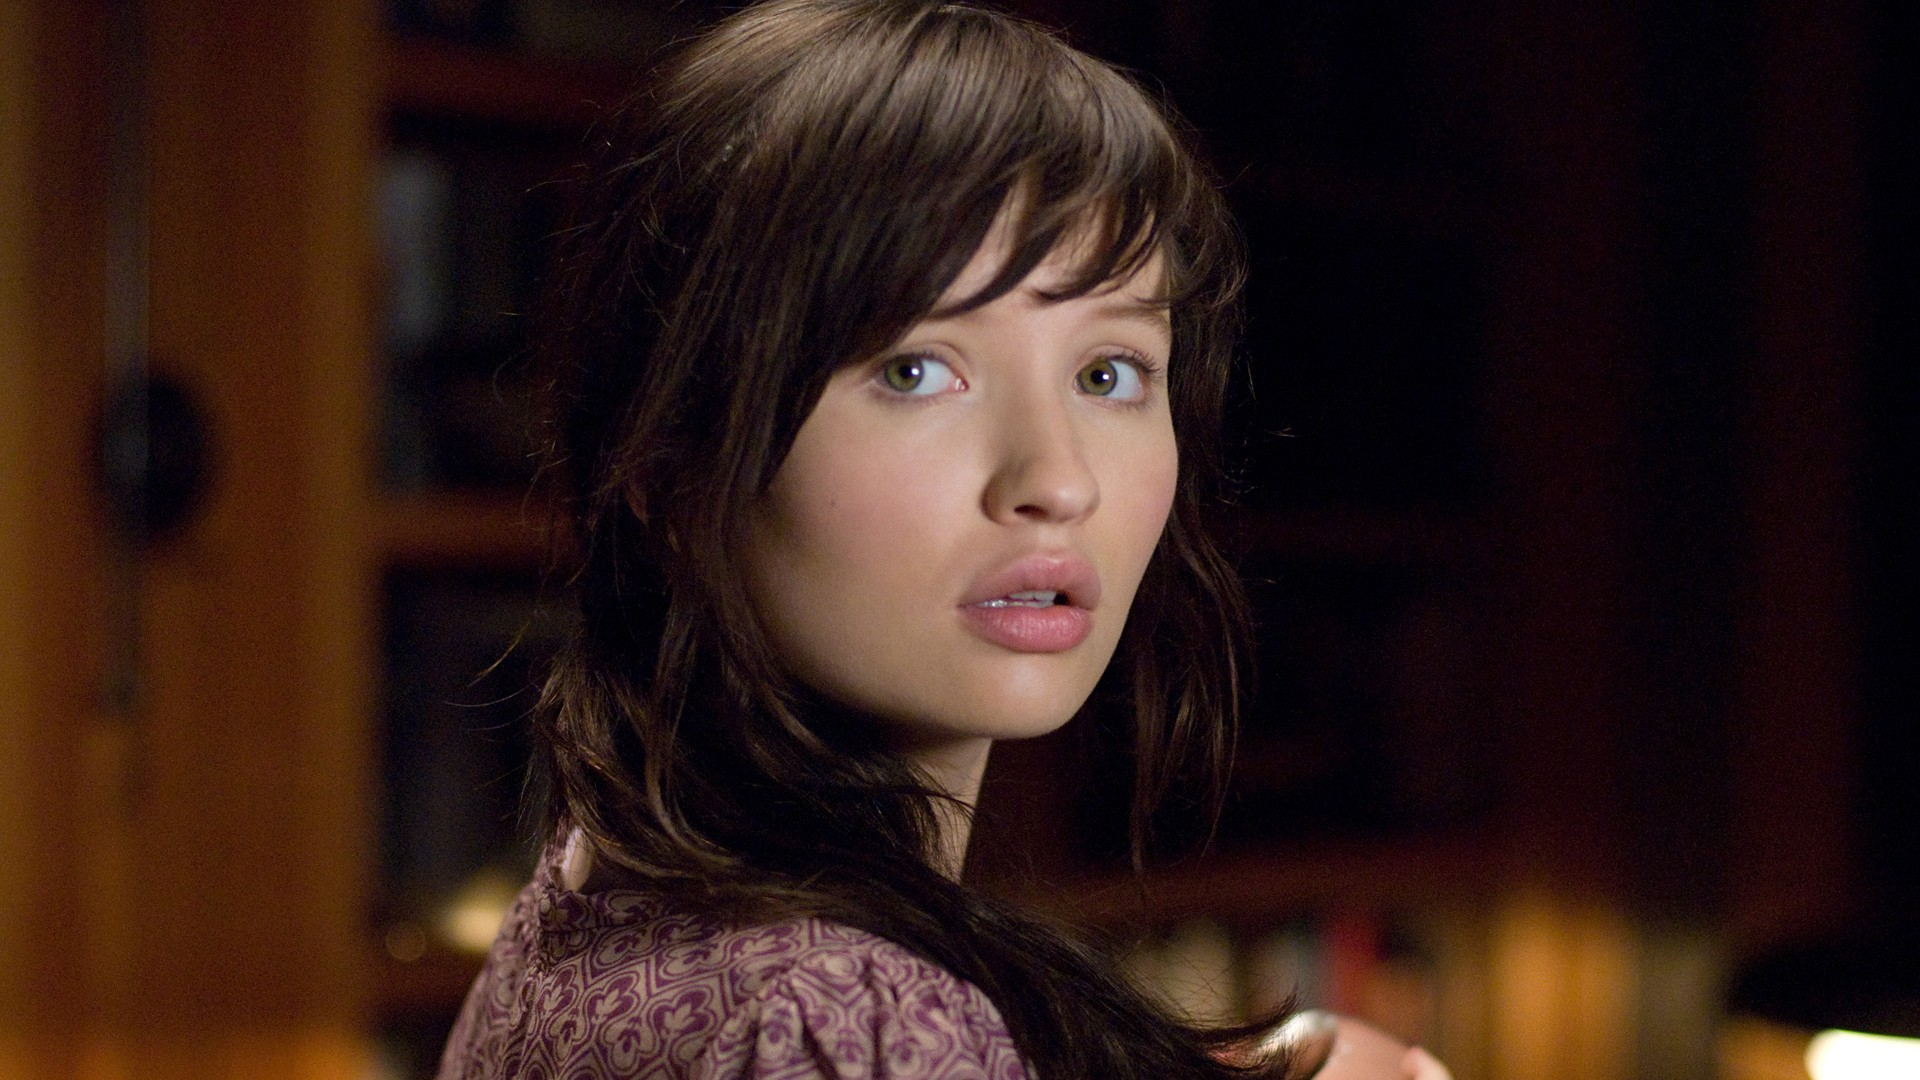 1920x1080 - Emily Browning Wallpapers 15